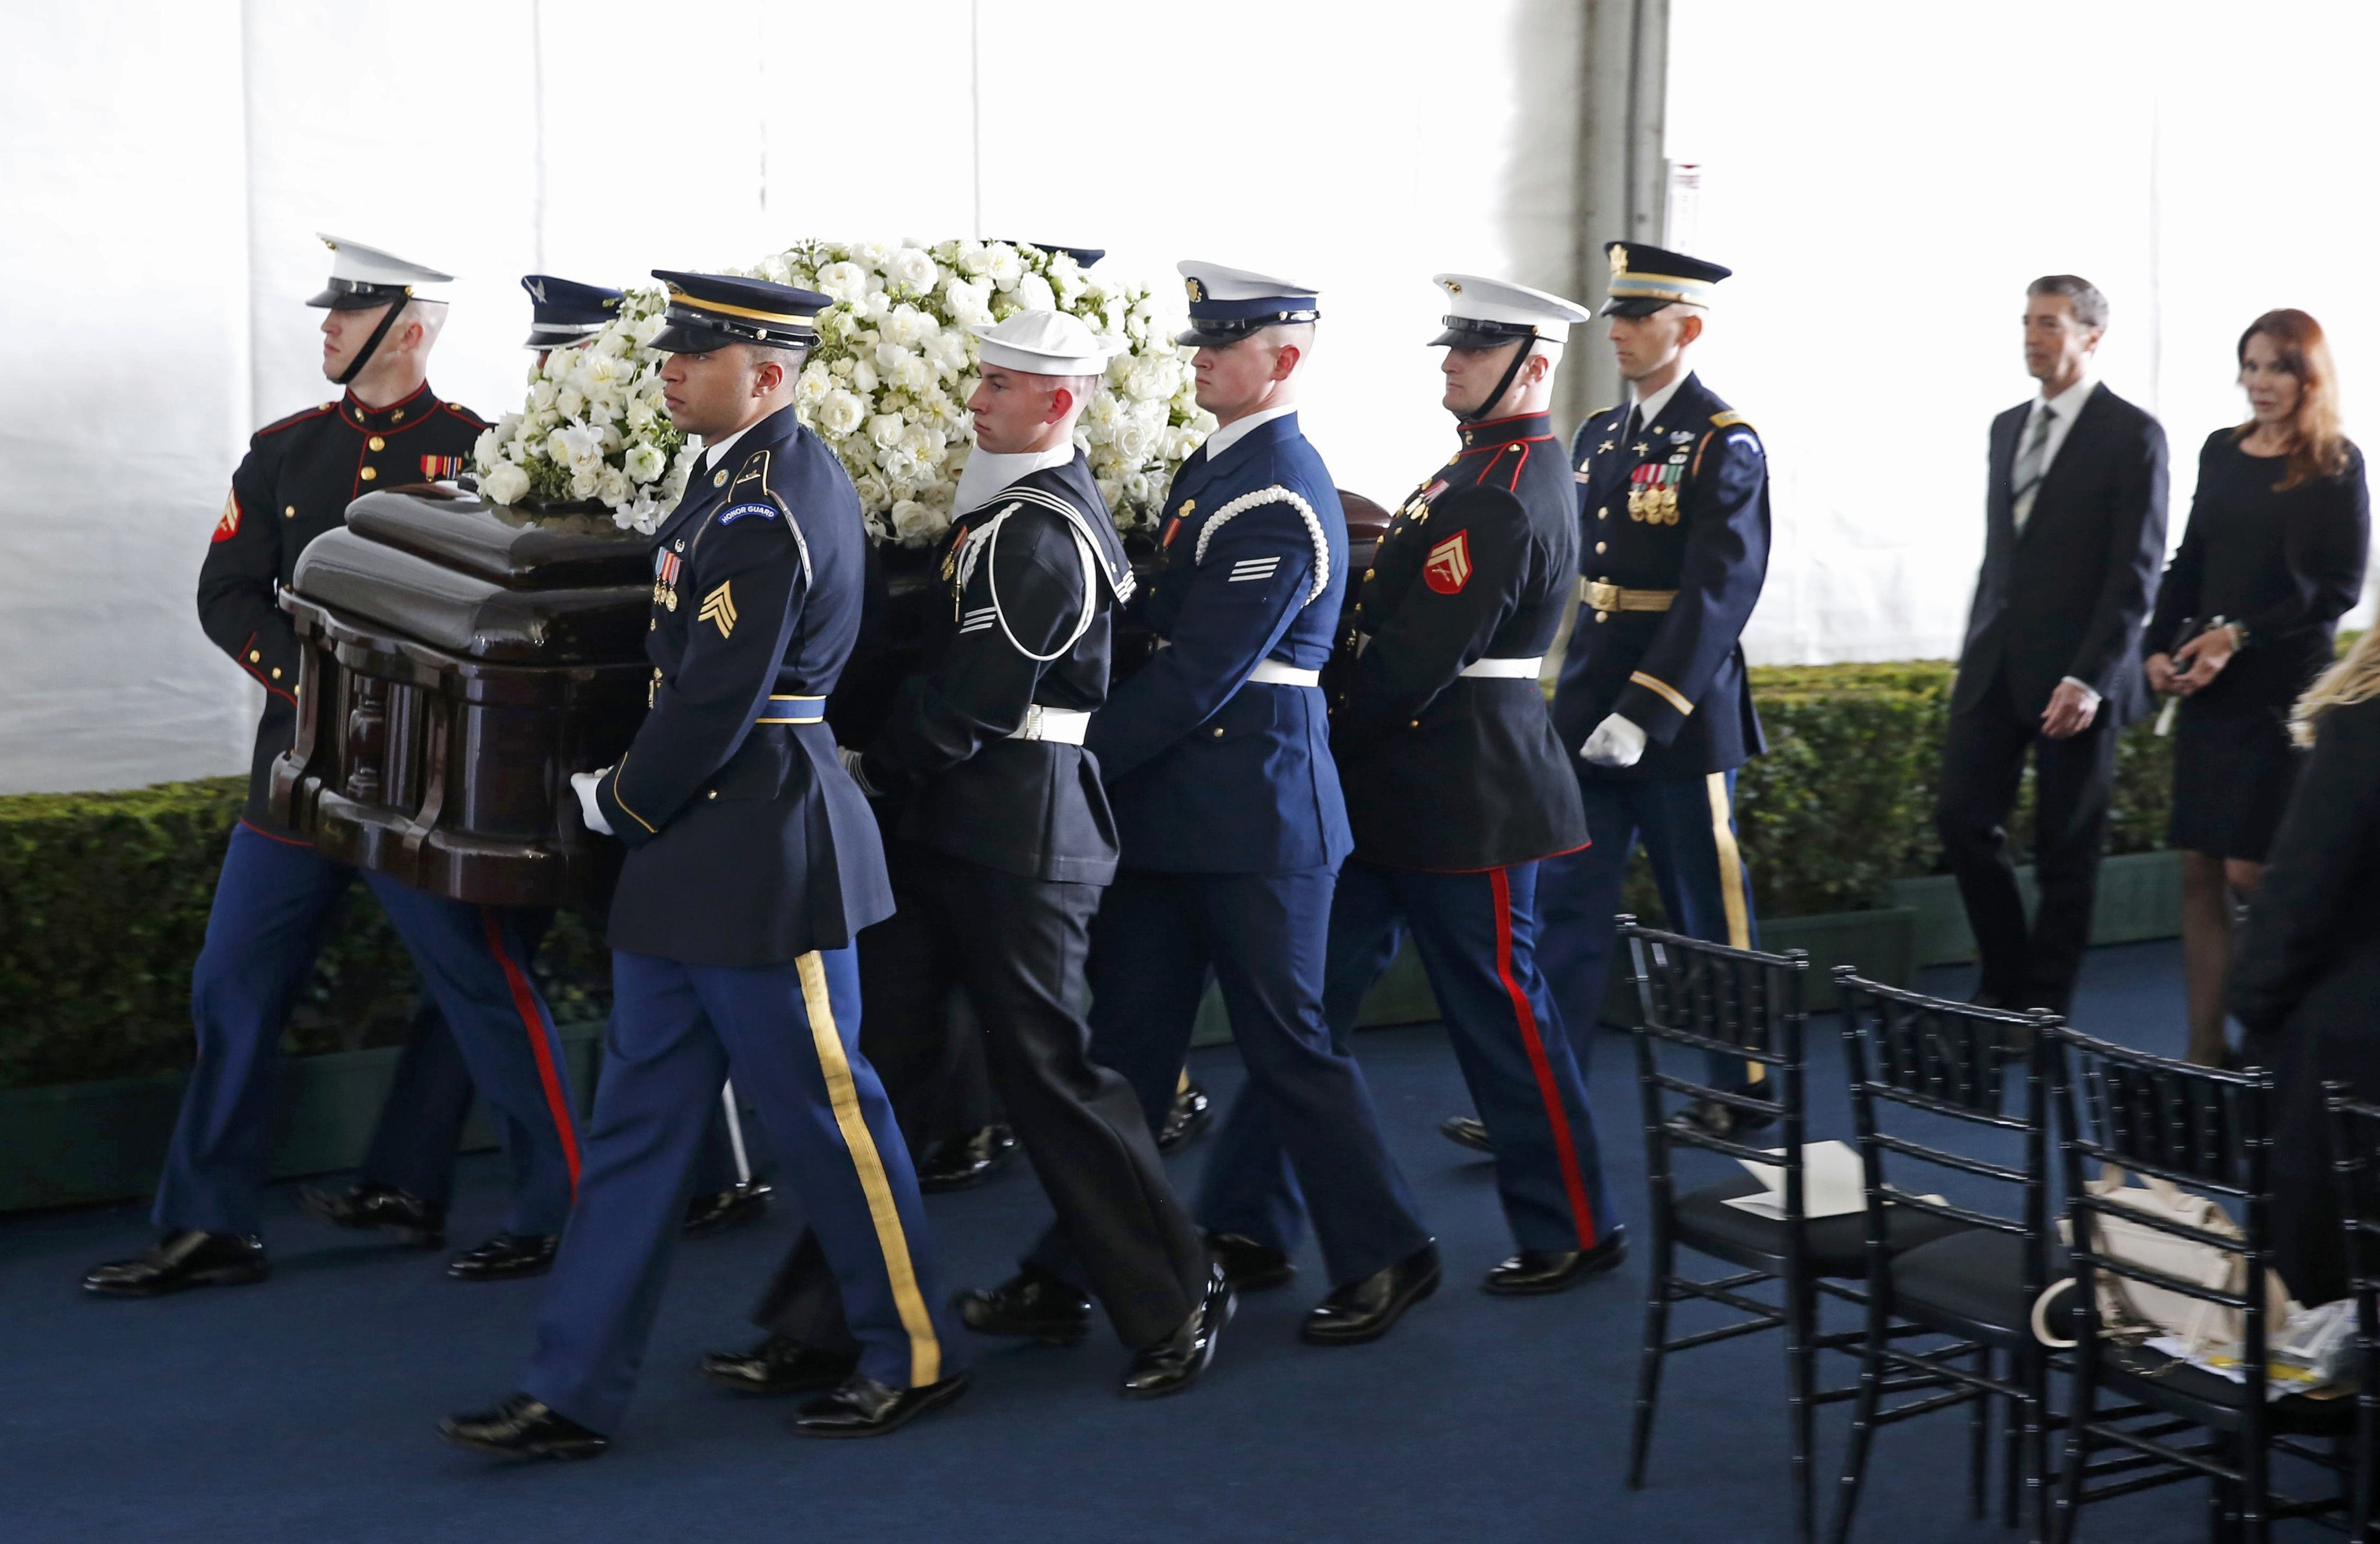 A military honor guard carries the casket and is followed by Nancy Reagan's son Ronald Prescott Reagan, and daughter Patti Davis after the funeral service, March 11, 2016.